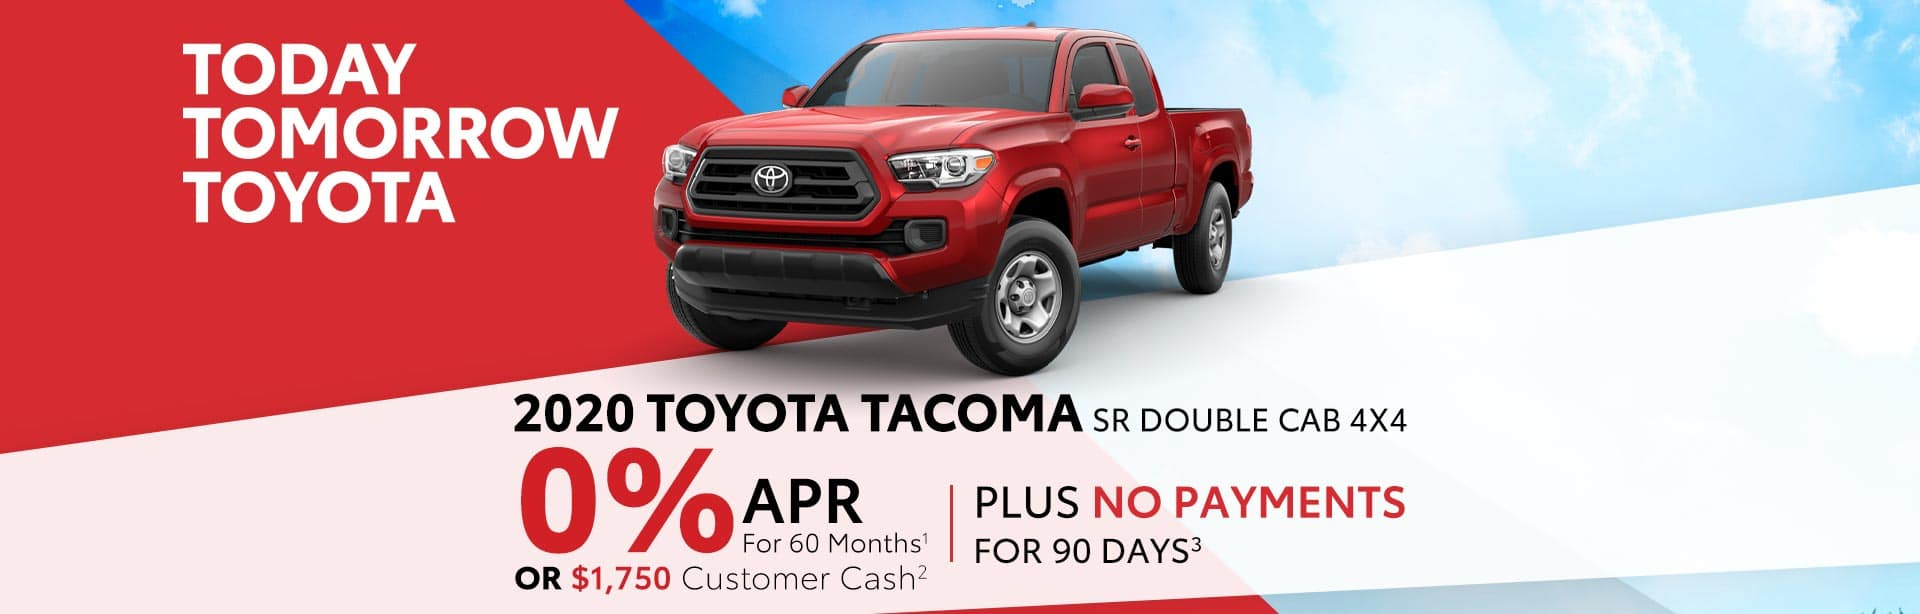 Best Deal on a Toyota Tacoma near Indianapolis, Indiana